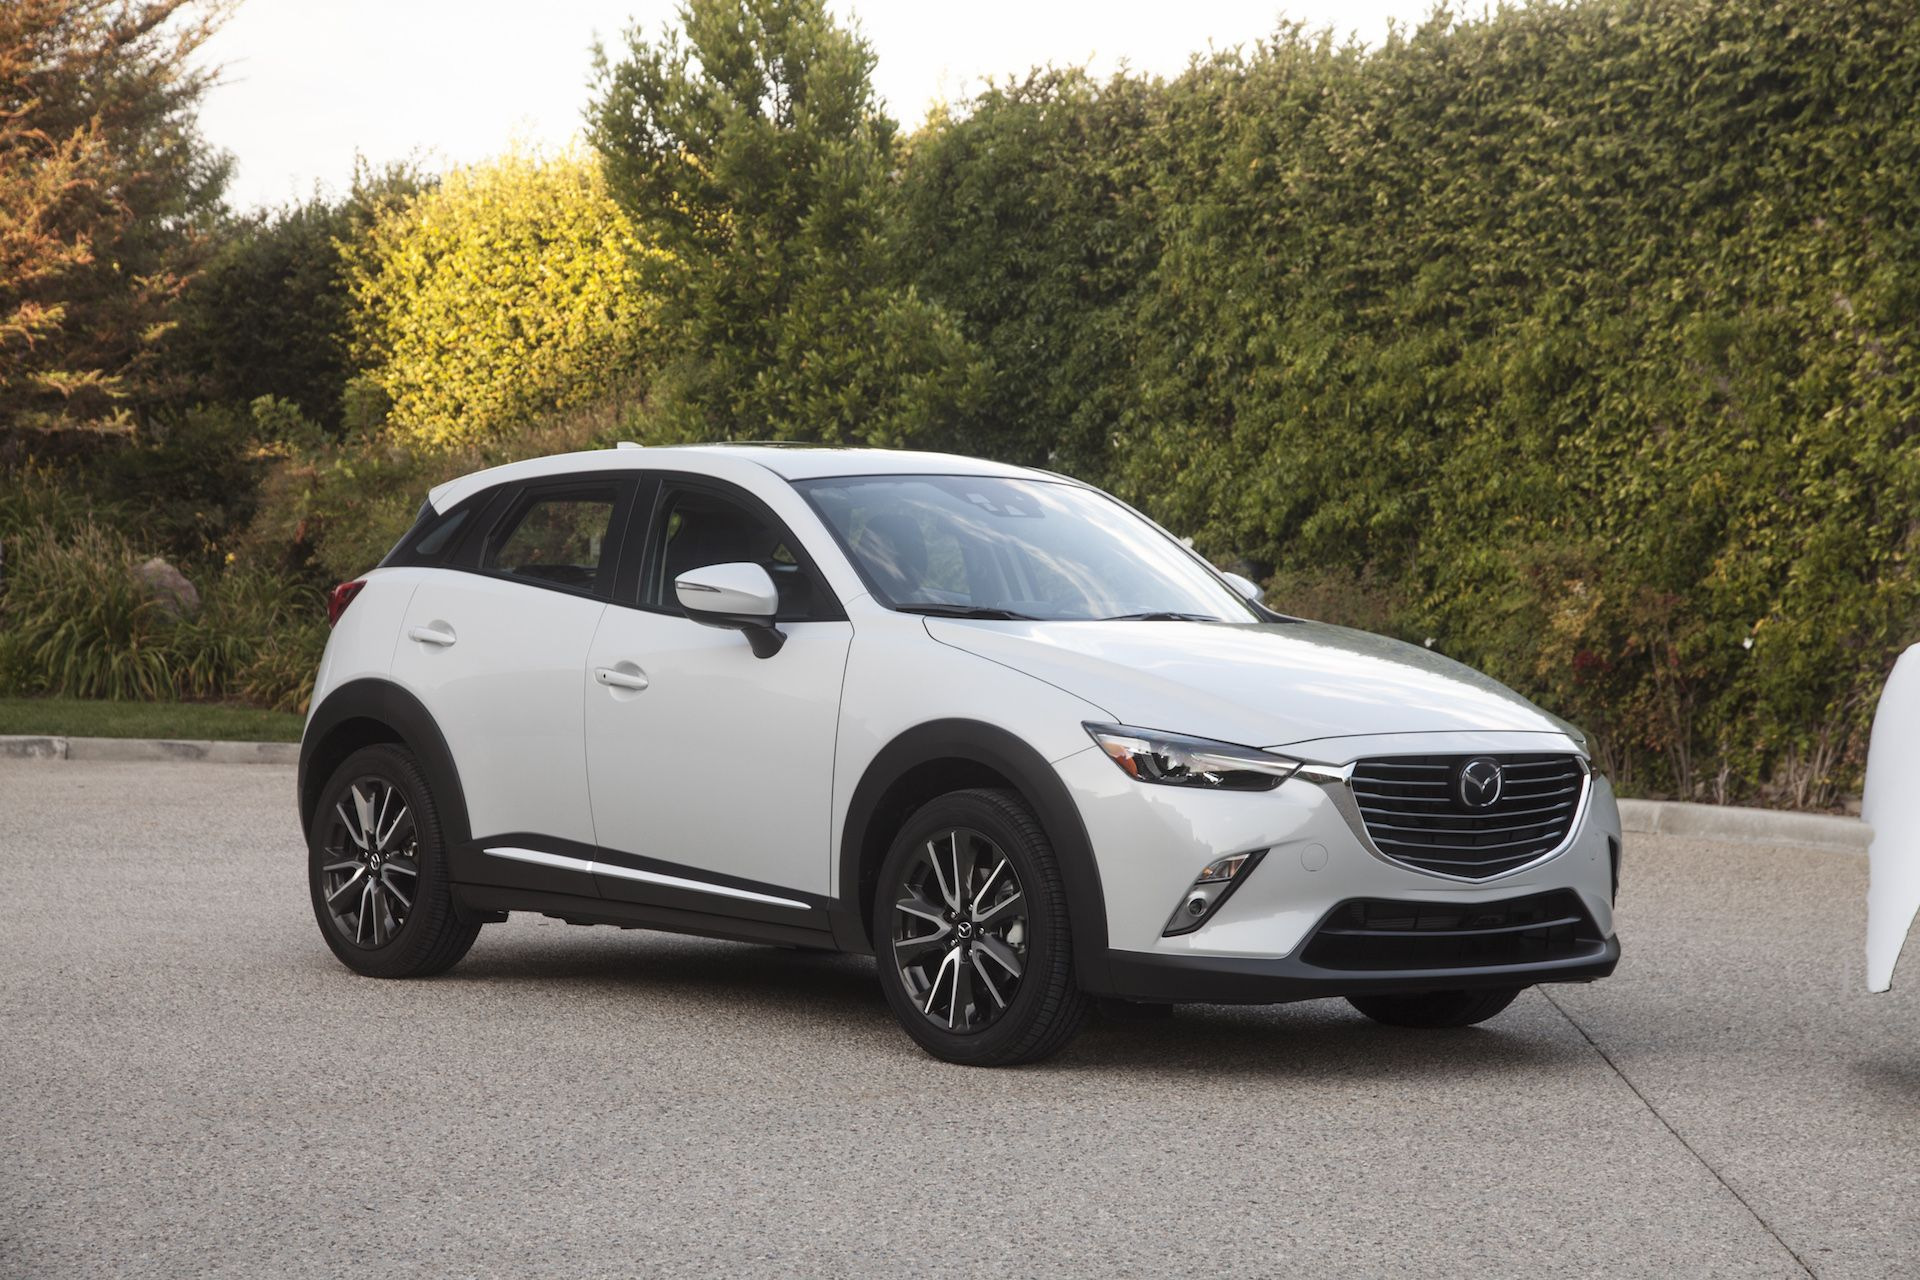 The Mazda CX-3 crossover hatchback returns for its sophomore year ...